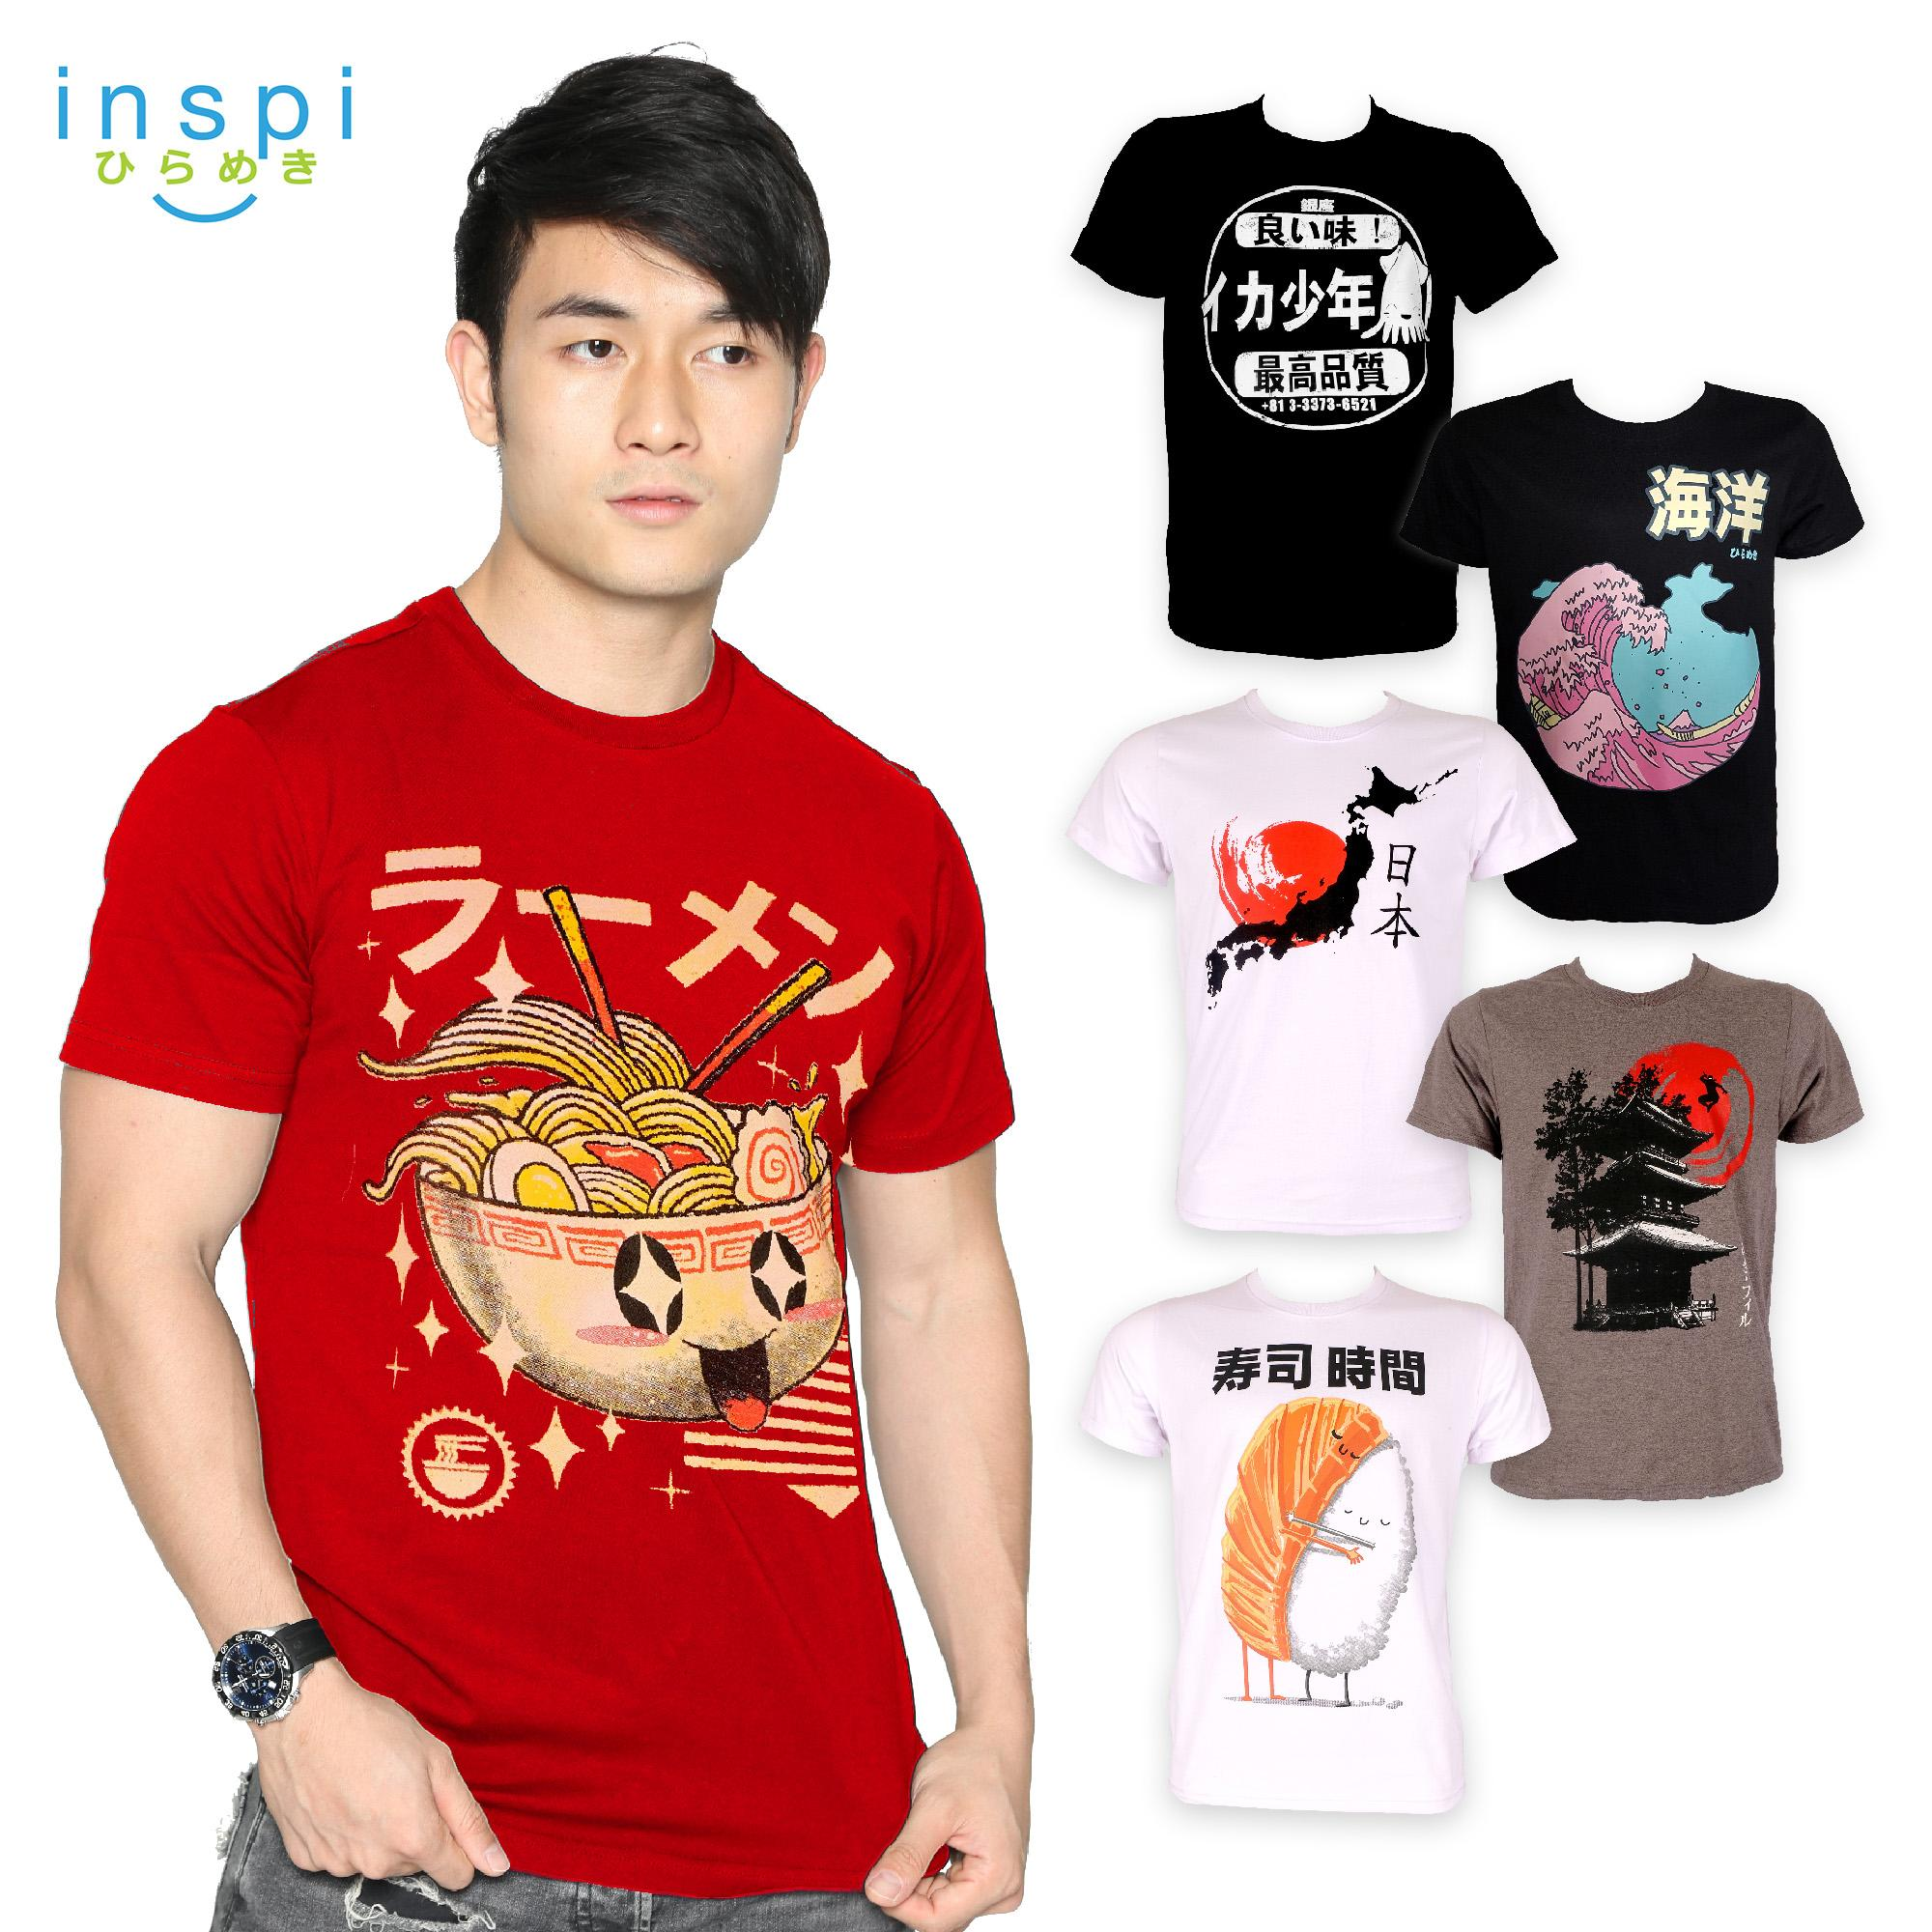 fc37afaa7552 INSPI Tees Nippon Collection tshirt printed graphic tee Mens t shirt shirts  for men tshirts sale